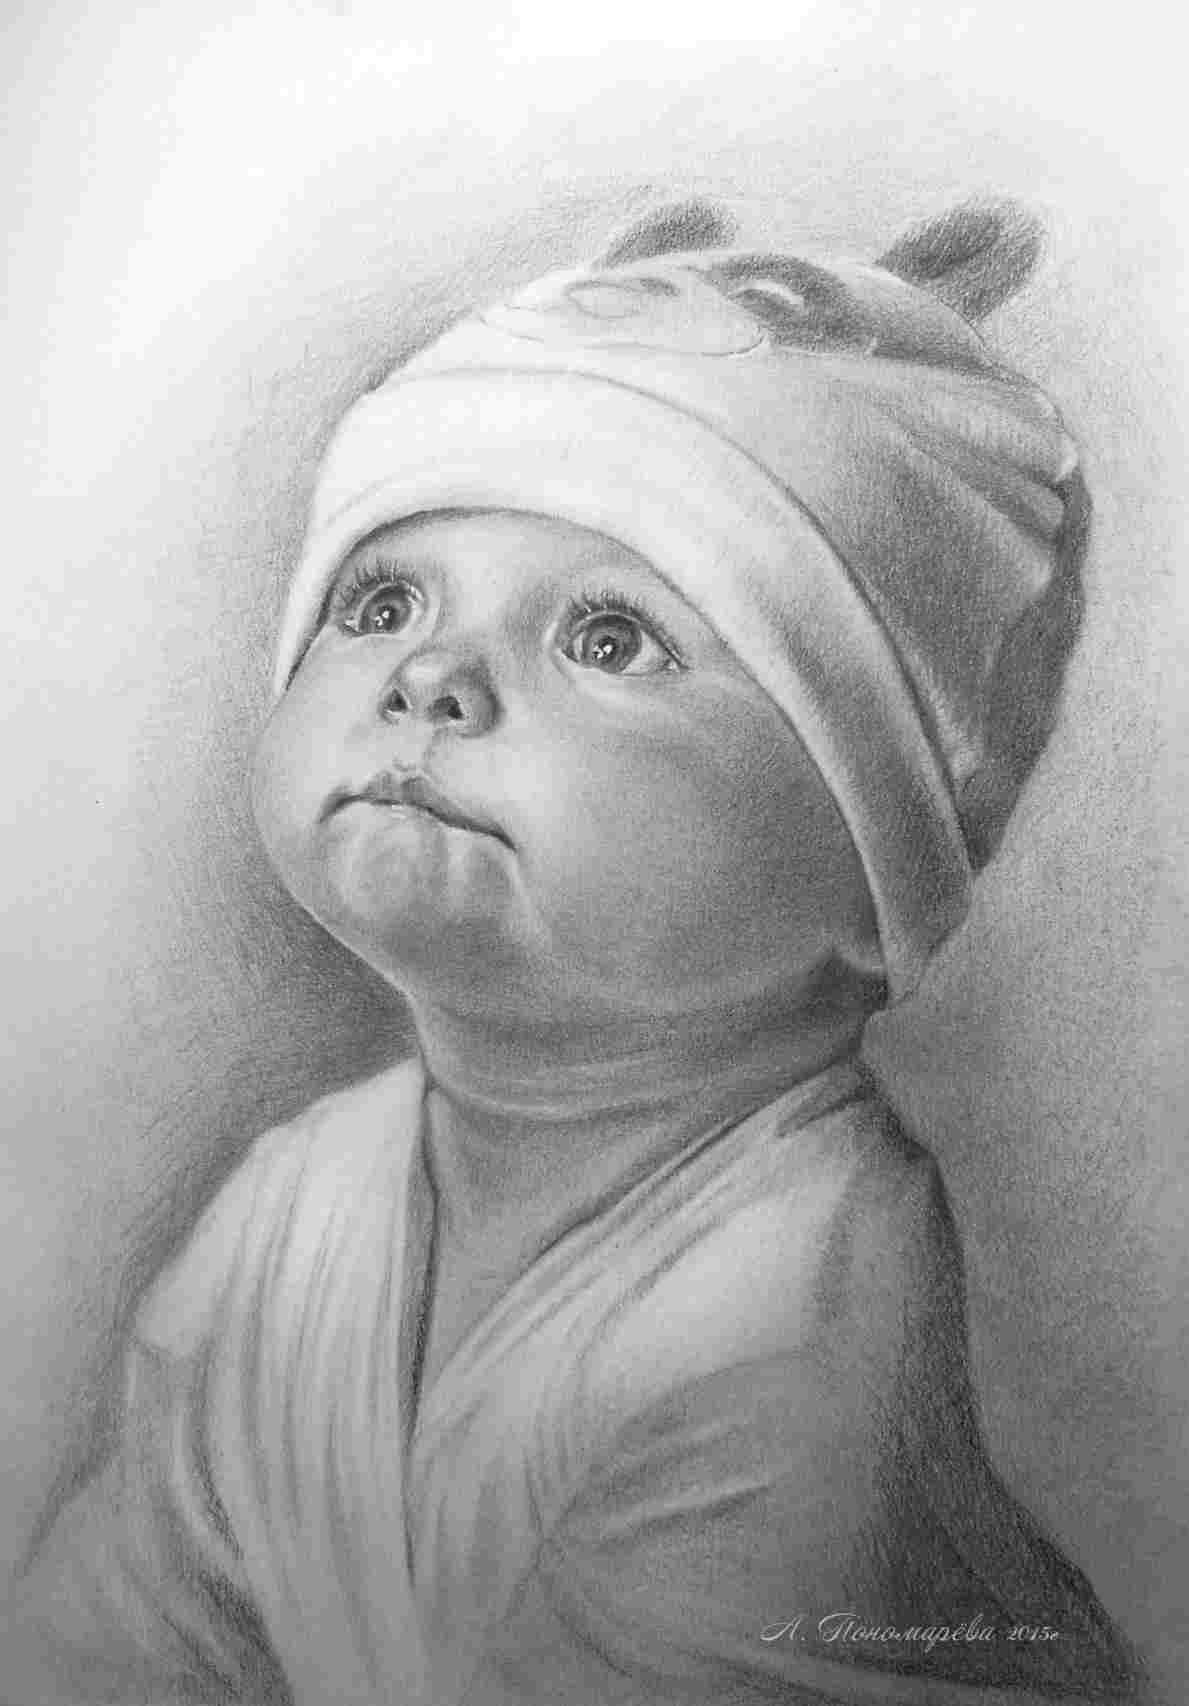 how to draw a real baby how to draw a realistic baby step by step realistic draw real a how to baby